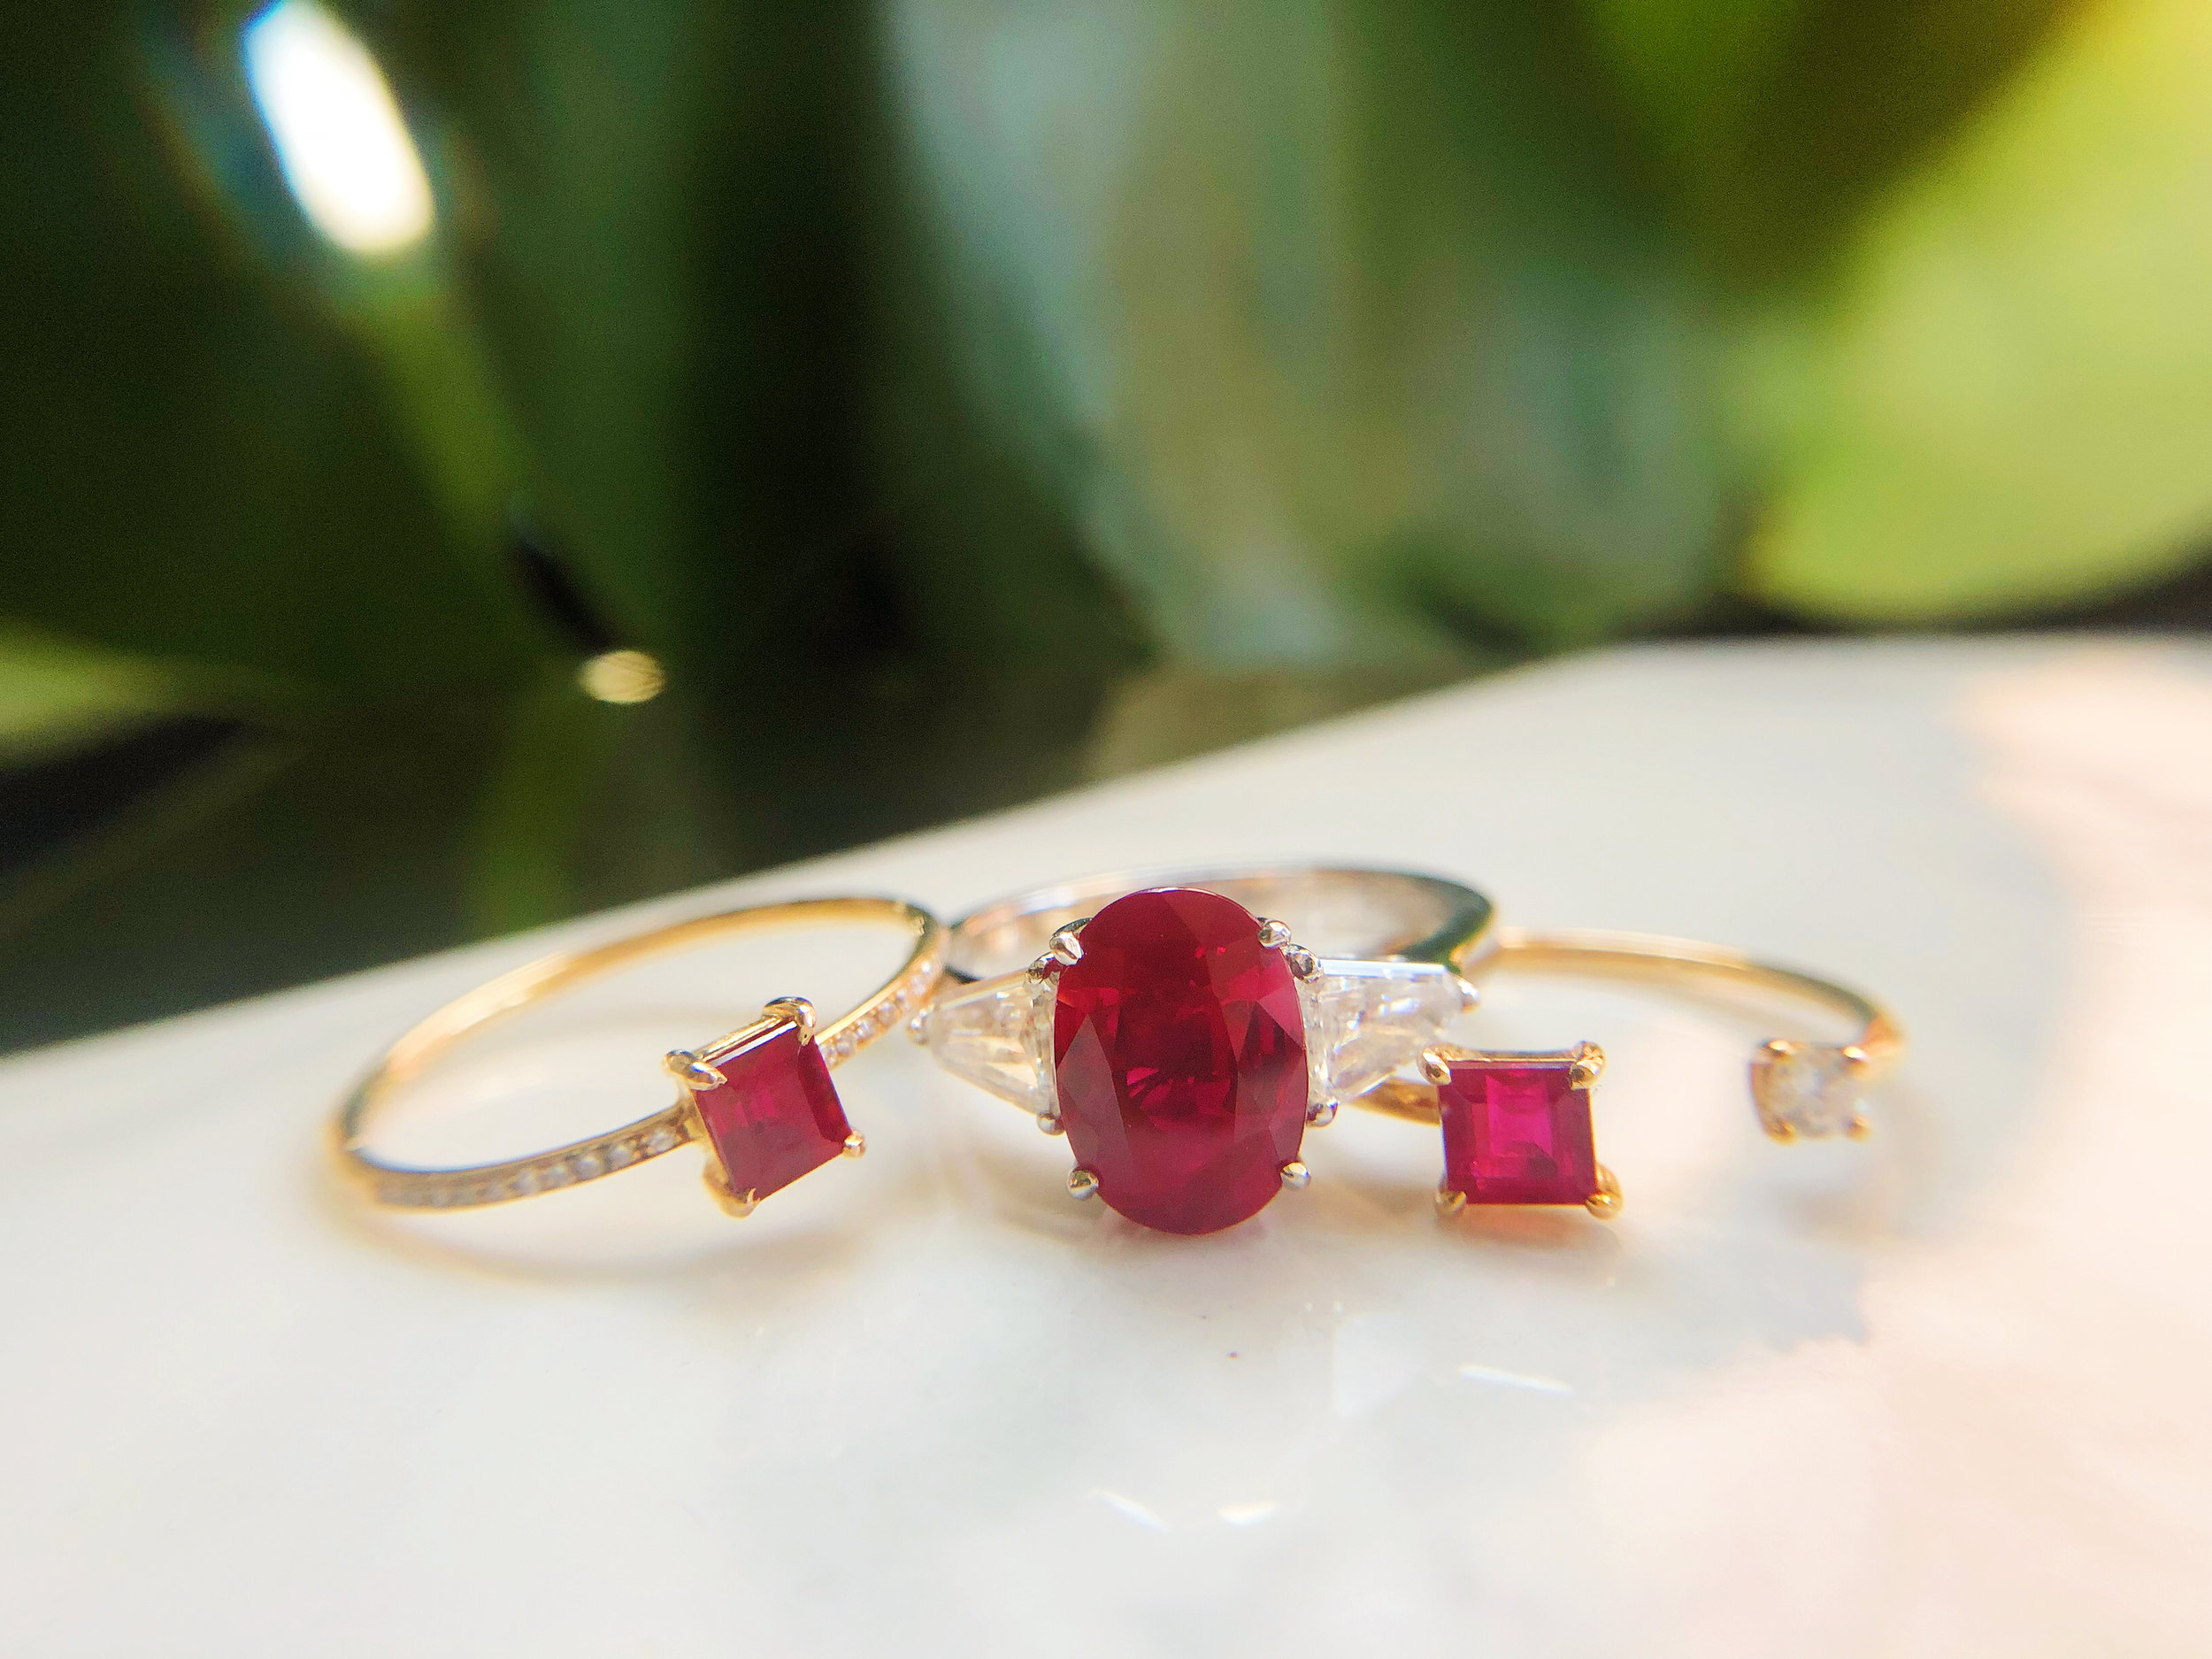 Precious Stone Jewellery - Please see our exclusive collection of precious gemstone jewellery.